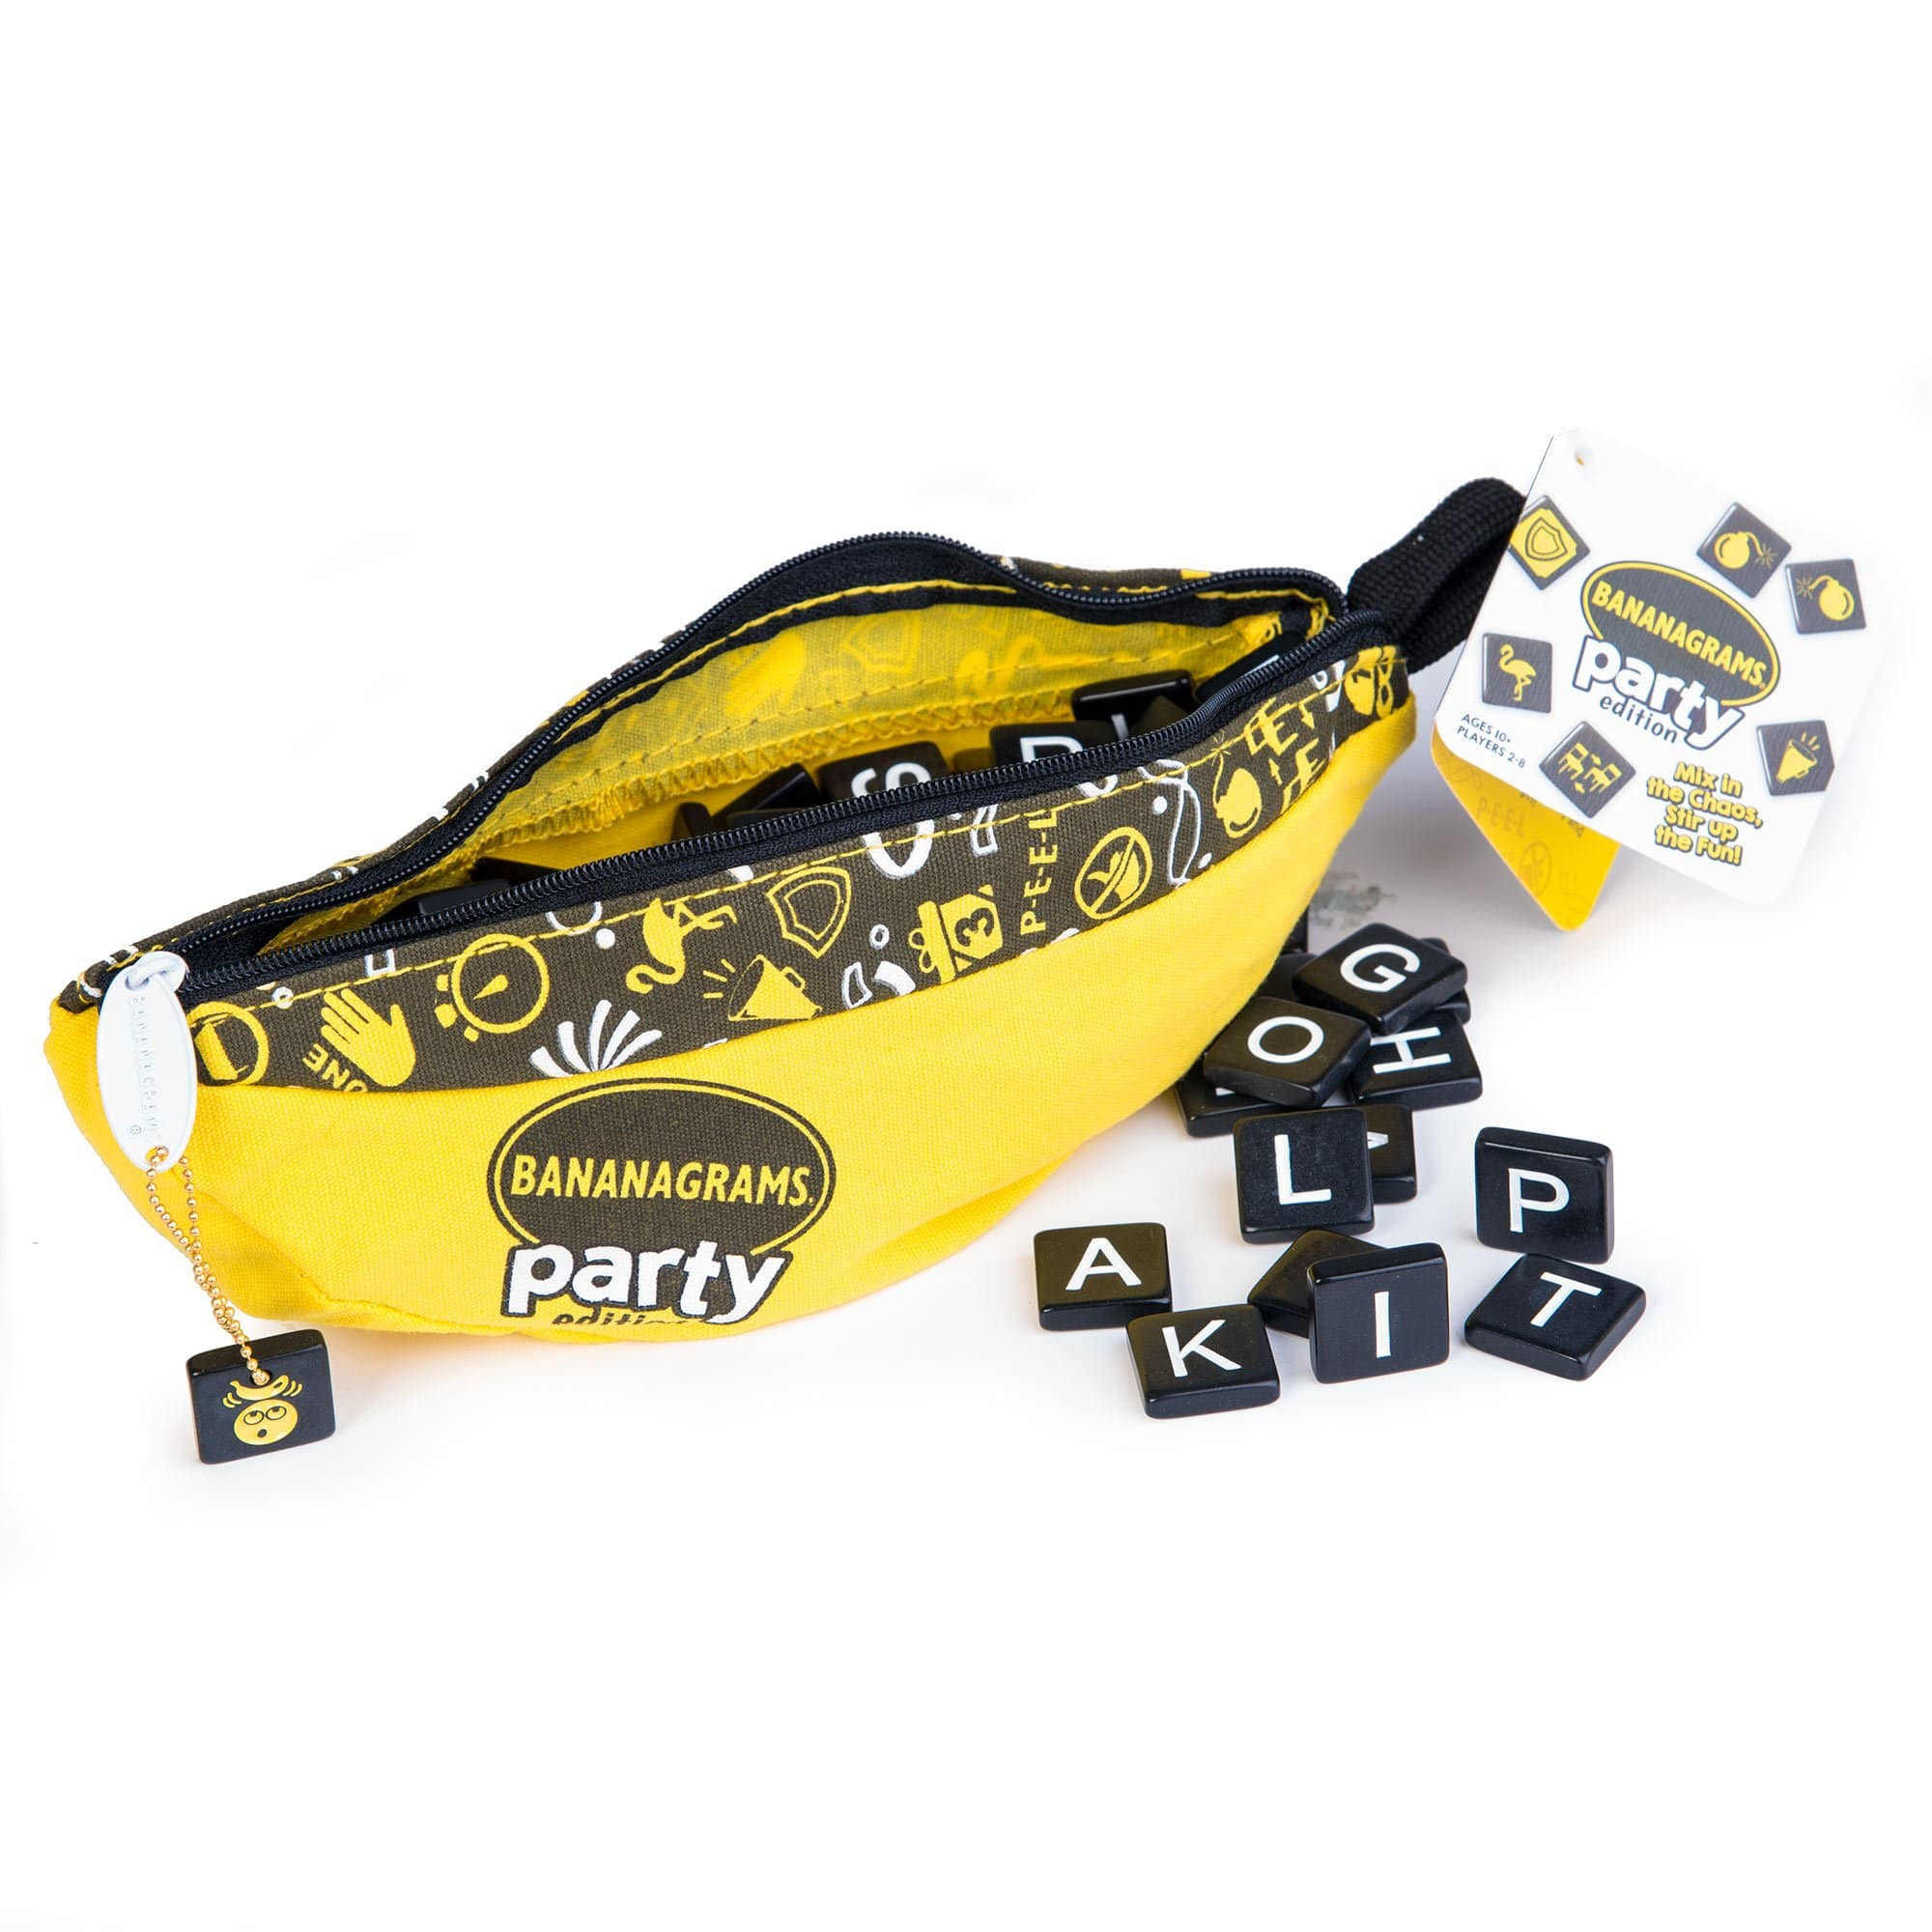 ACBAPARTY-1-01-bananagrams party